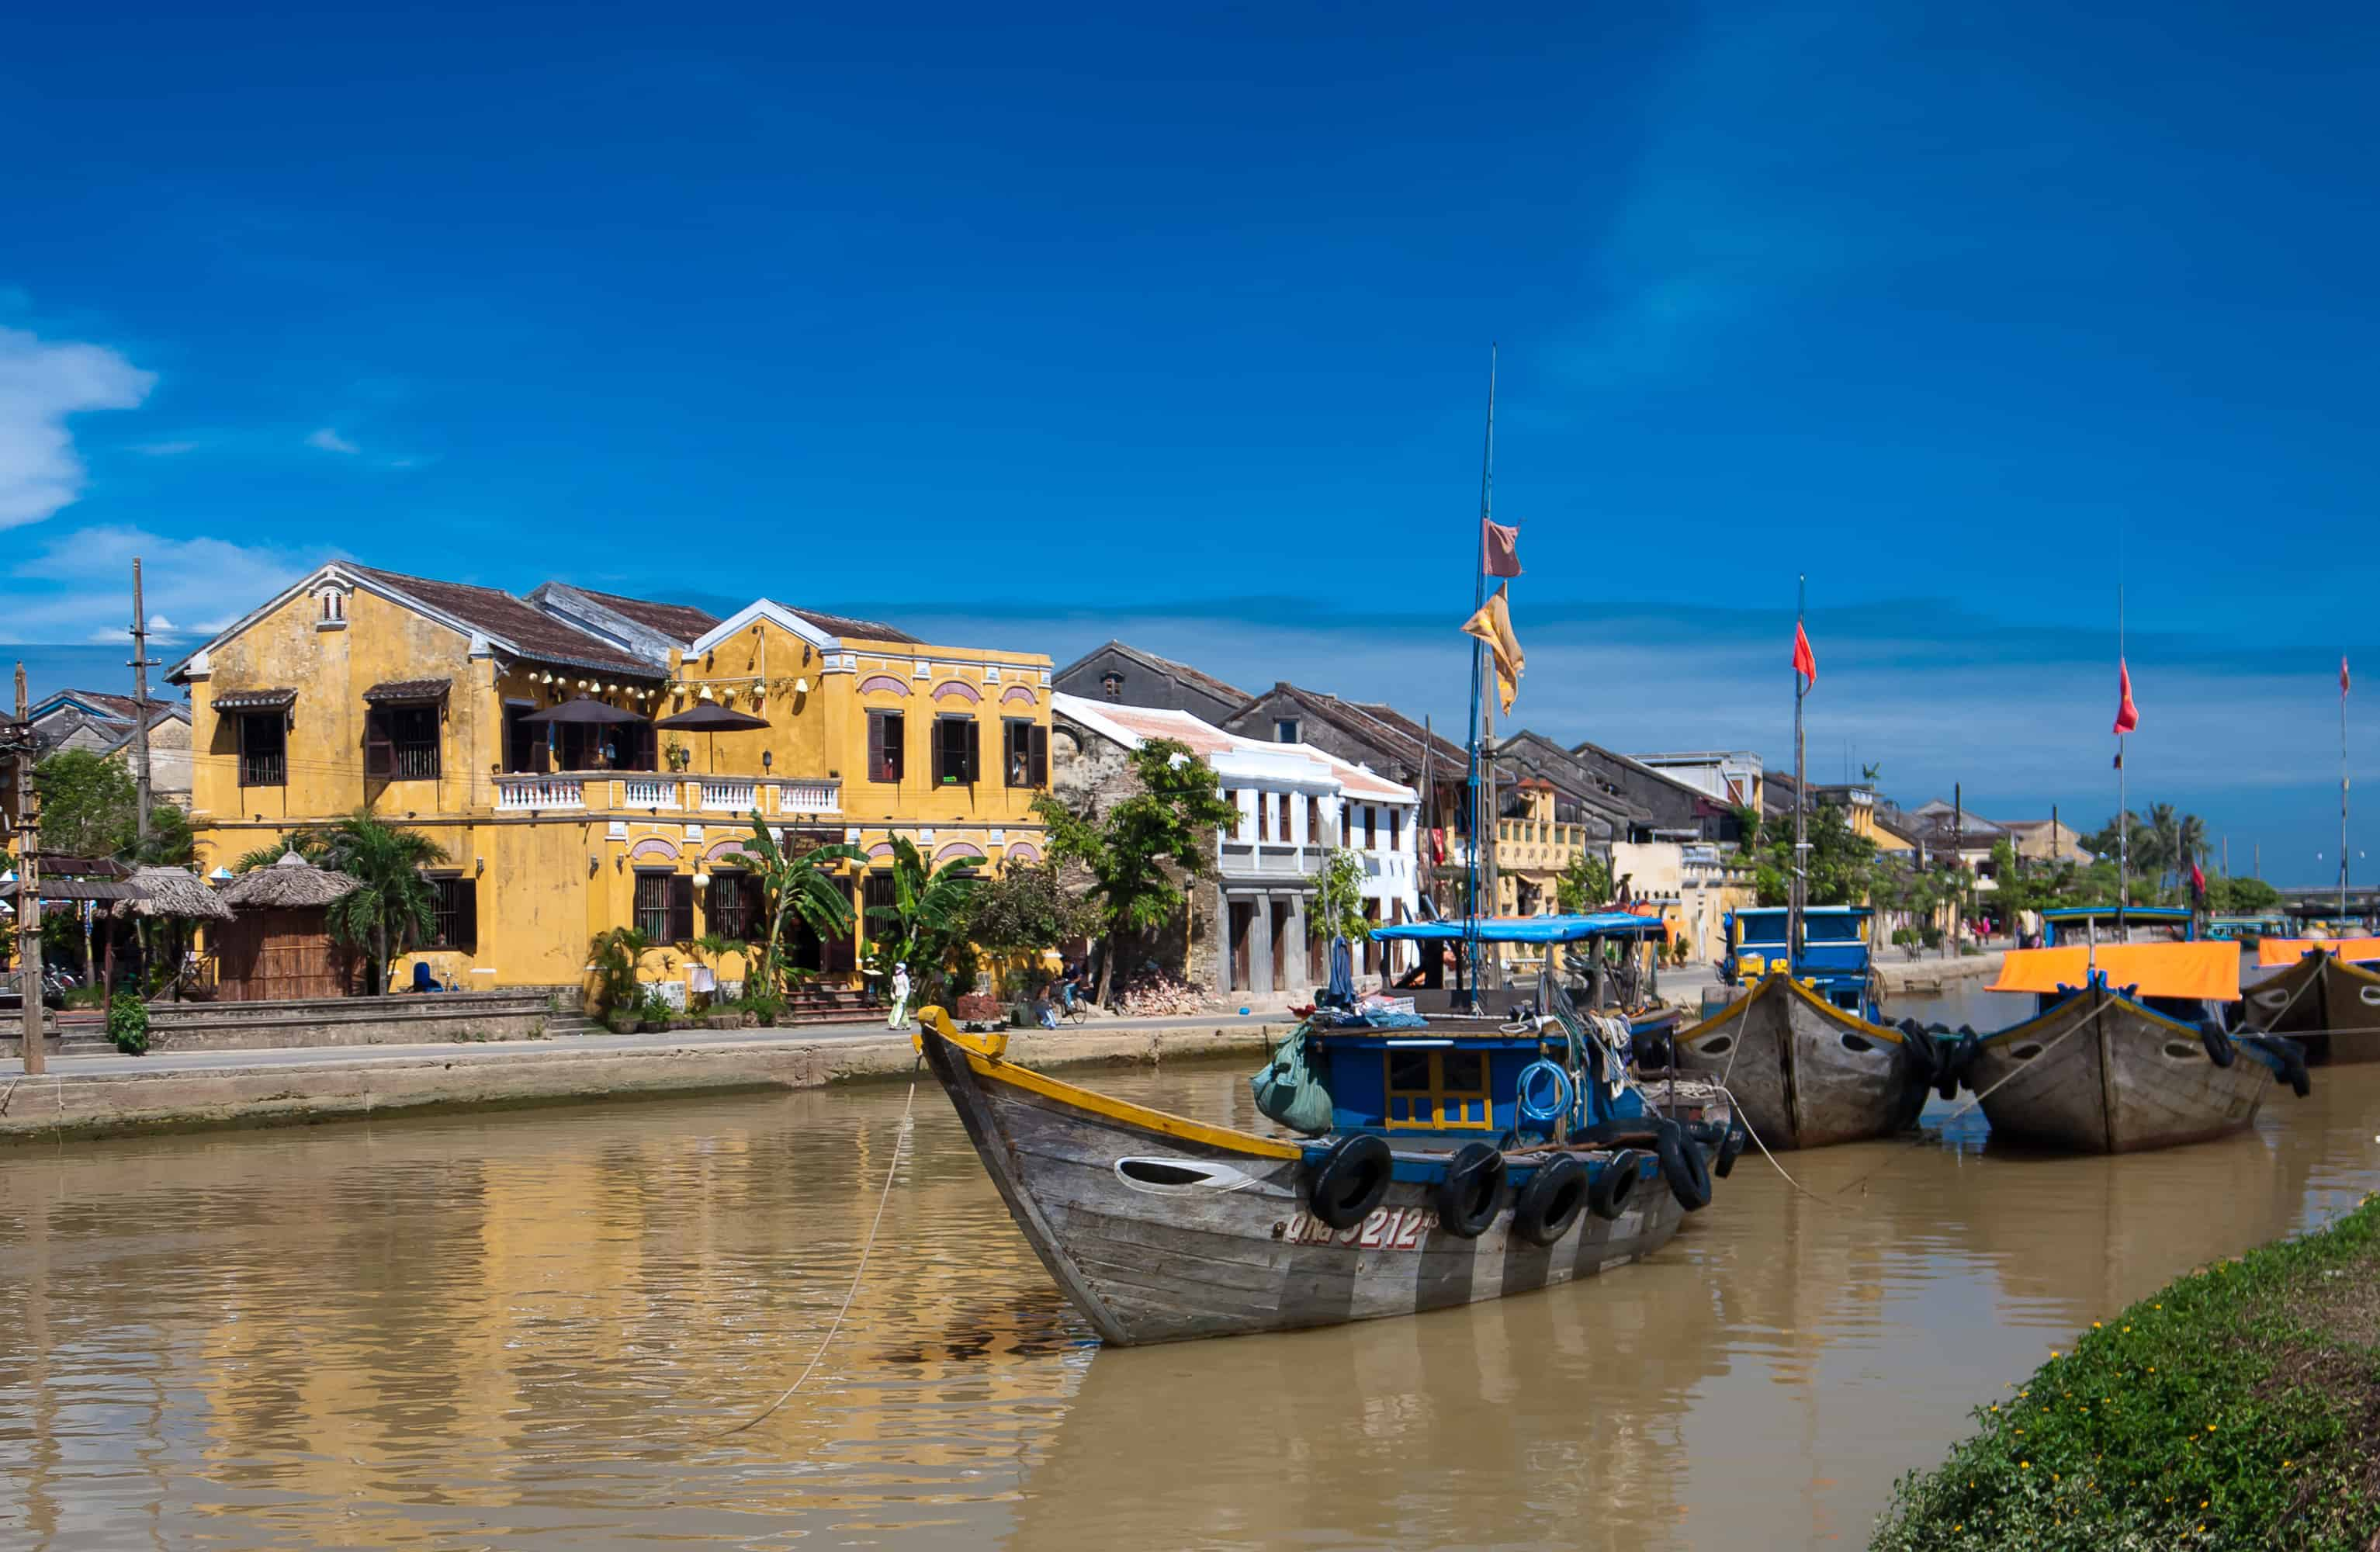 boats on the banks of Thu Bon River in Vietnam